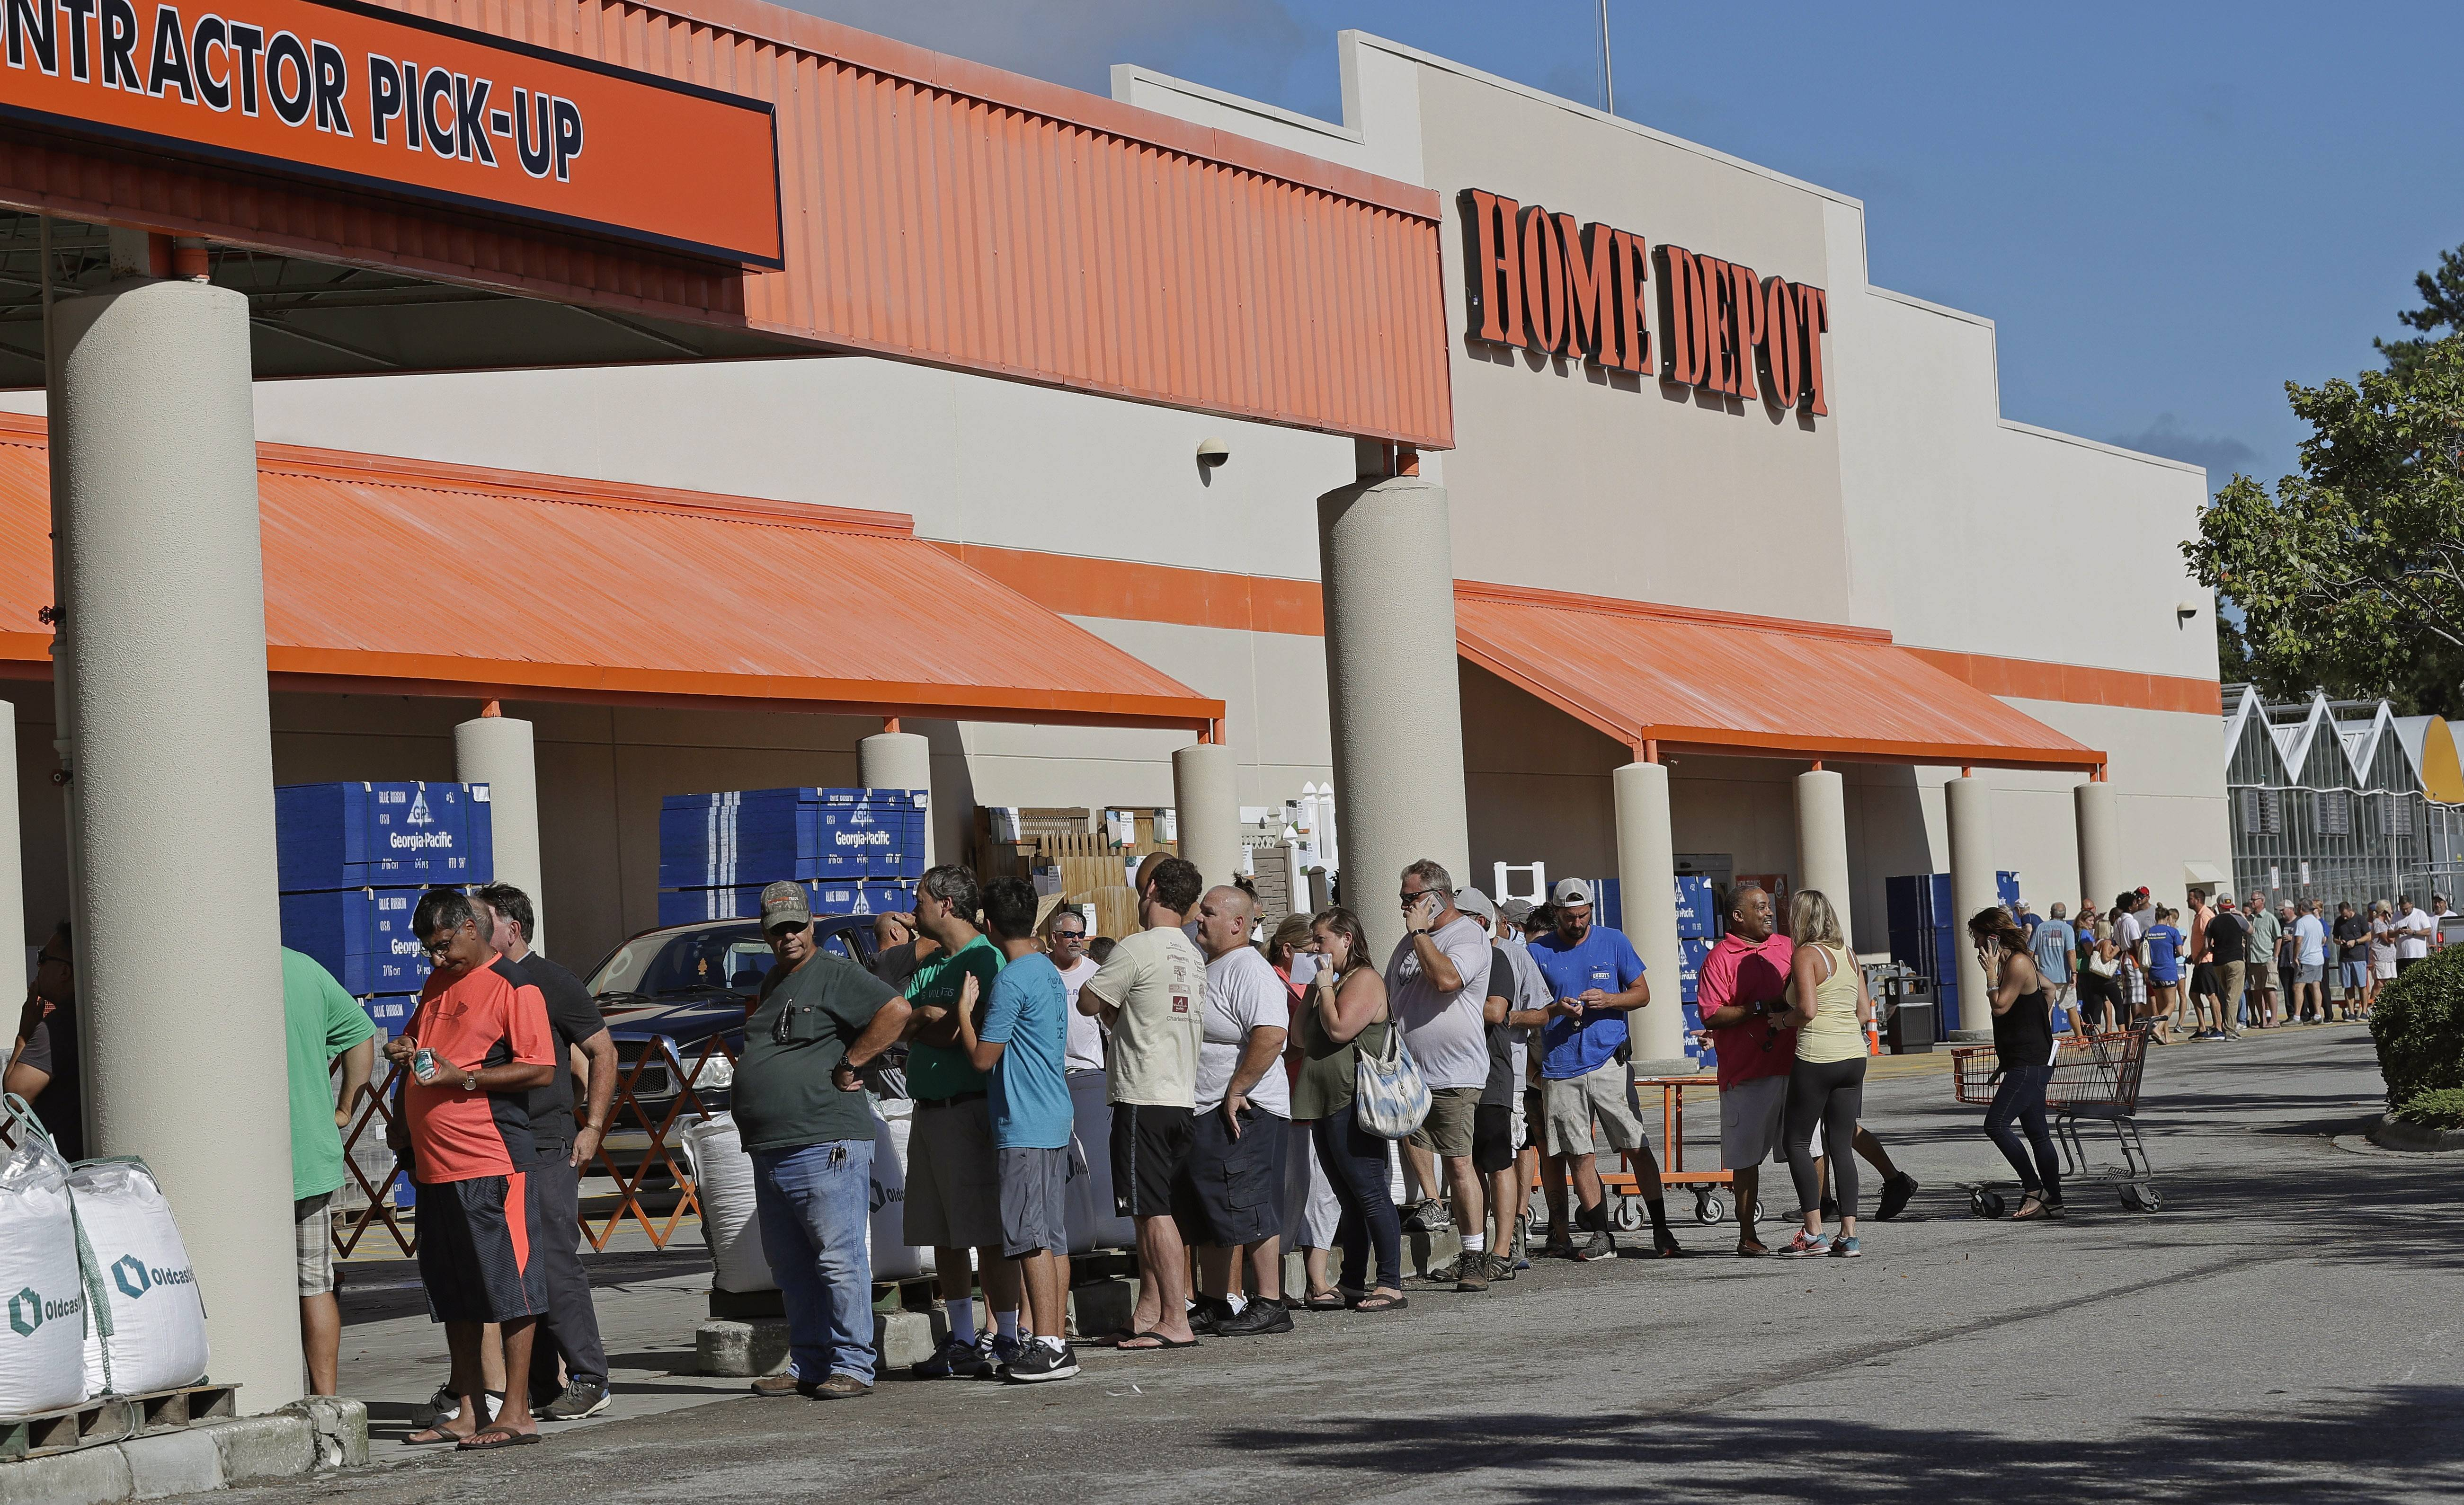 People line up outside a Home Depot for a new supply of generators and plywood in advance of Hurricane Florence in Wilmington, North Carolina, Wednesday. Florence exploded into a potentially catastrophic hurricane Monday as it closed in on North and South Carolina, carrying winds up to 140 mph and water that could wreak havoc over a wide stretch of the eastern United States later this week.